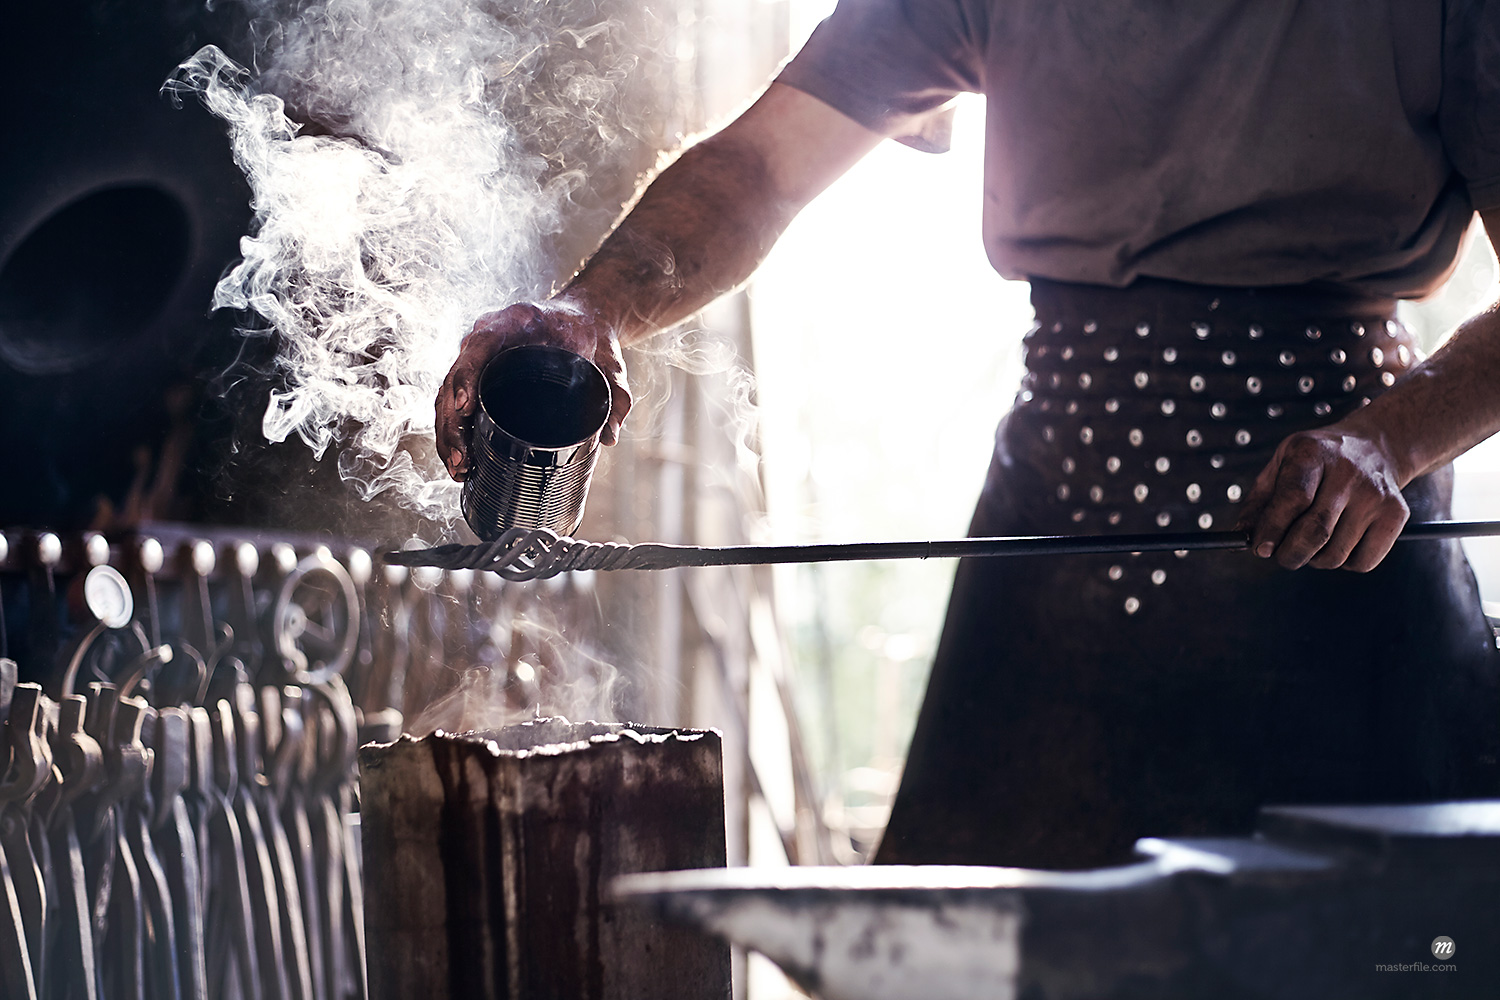 Blacksmith pouring hot liquid over wrought iron in forge  © Masterfile